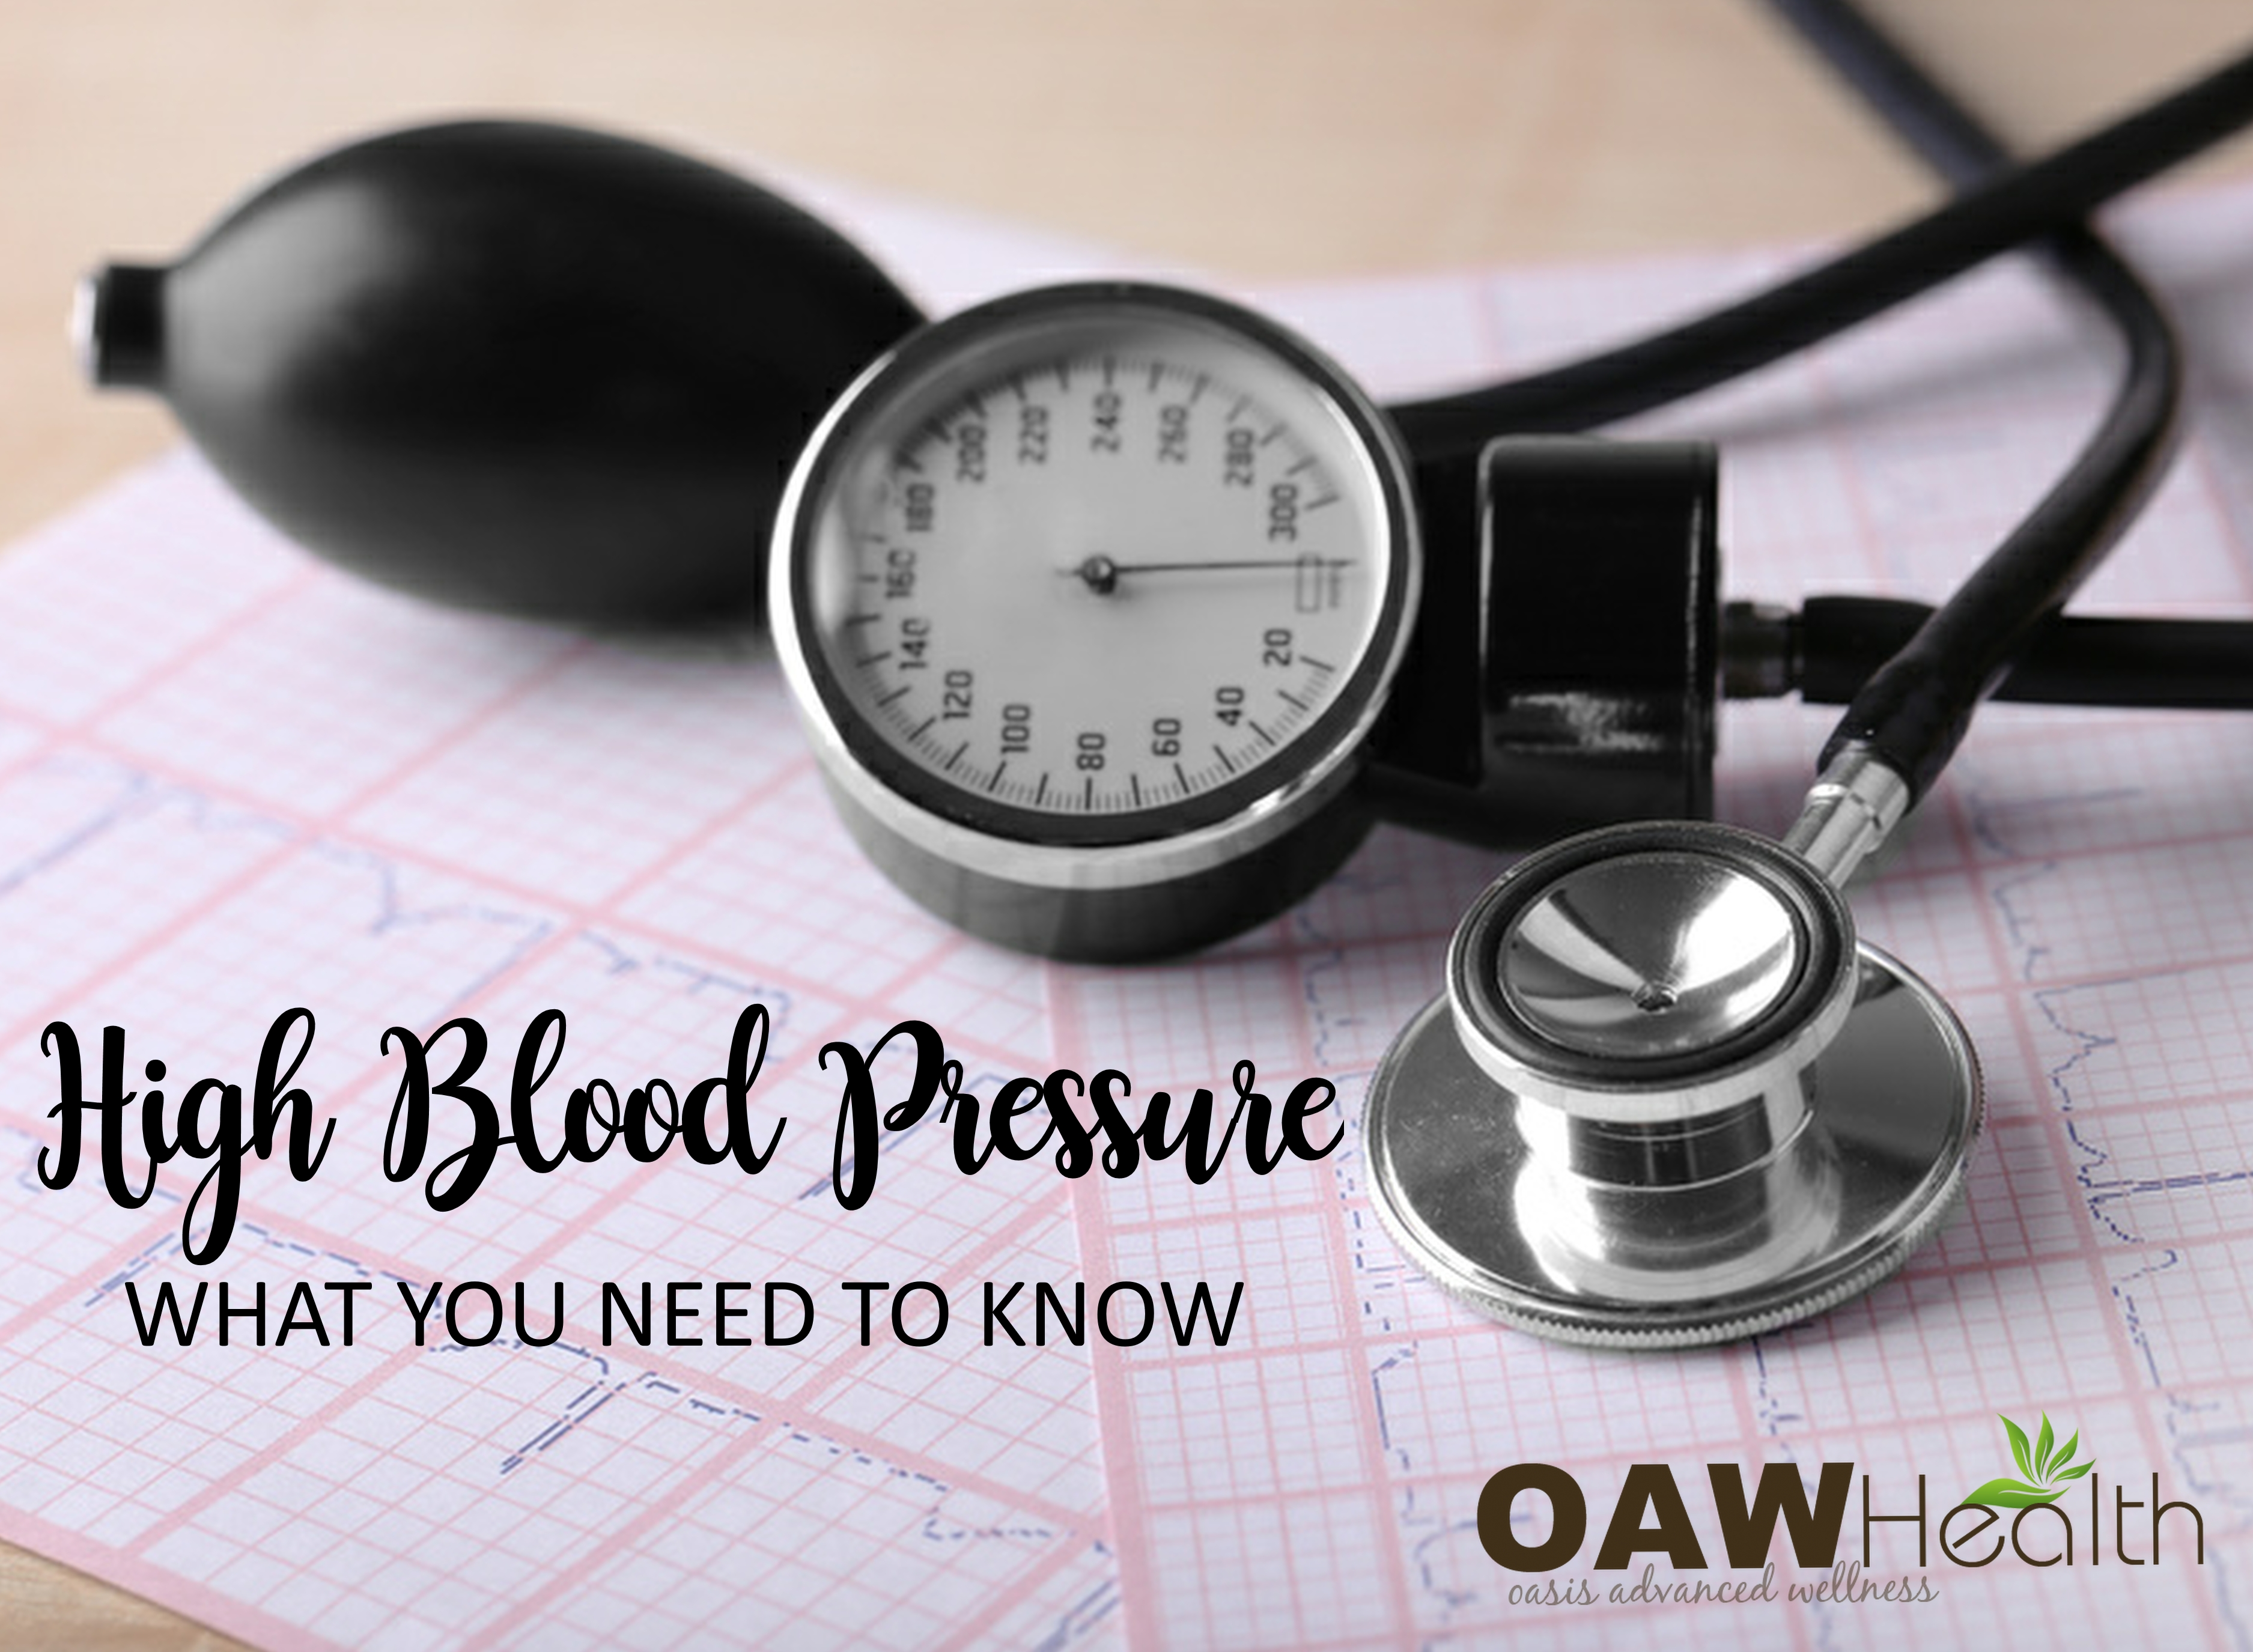 High Blood Pressure – What You Need to Know